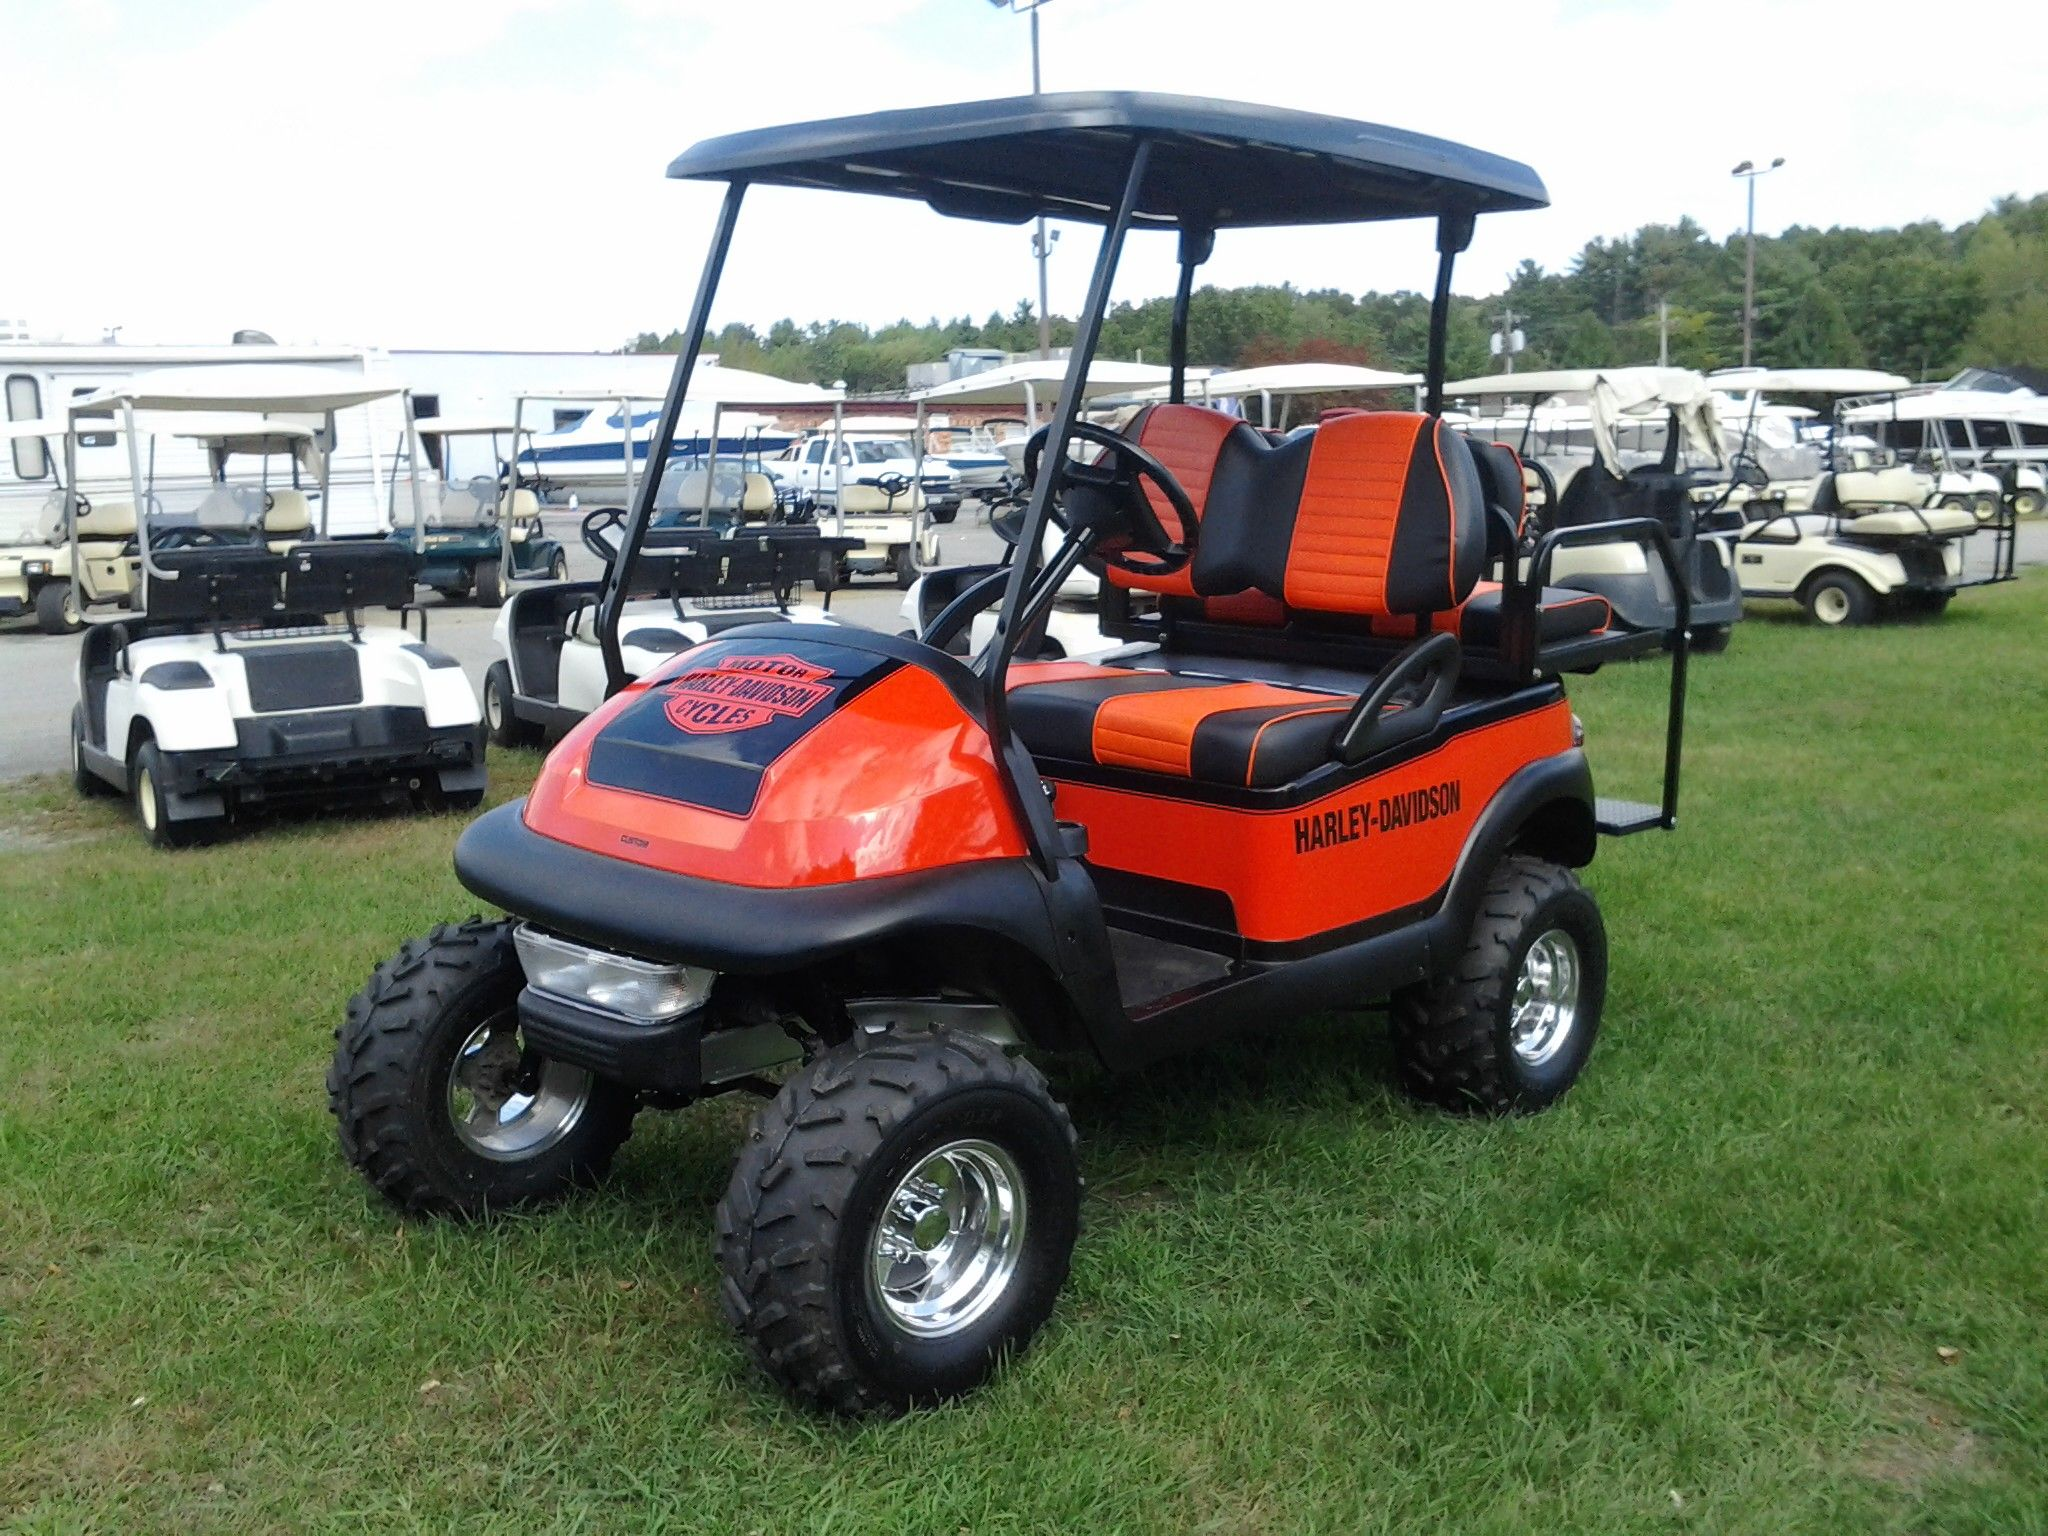 Harley Davidson Club Car golf cart | SWAG | Golf carts, Golf